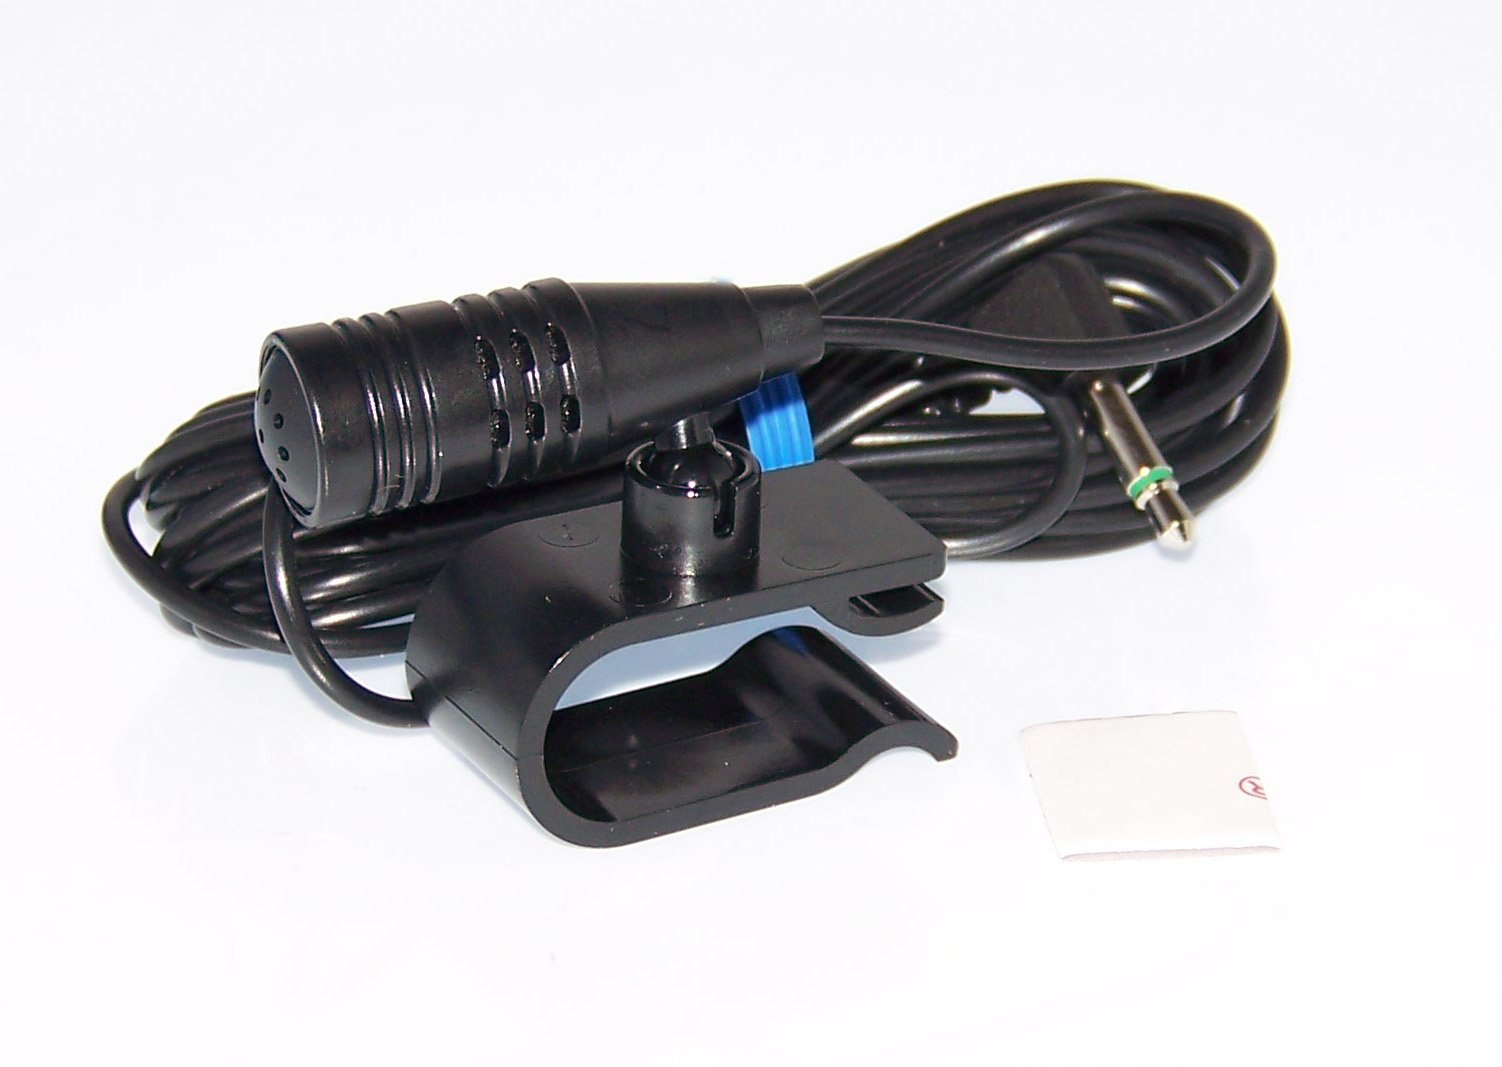 OEM Sony Measurement Microphone Shipped With XAVAX100C2, XAV-AX100C2, XAVAX200, XAV-AX200, XAVAX200C2, XAV-AX200C2 by Sony